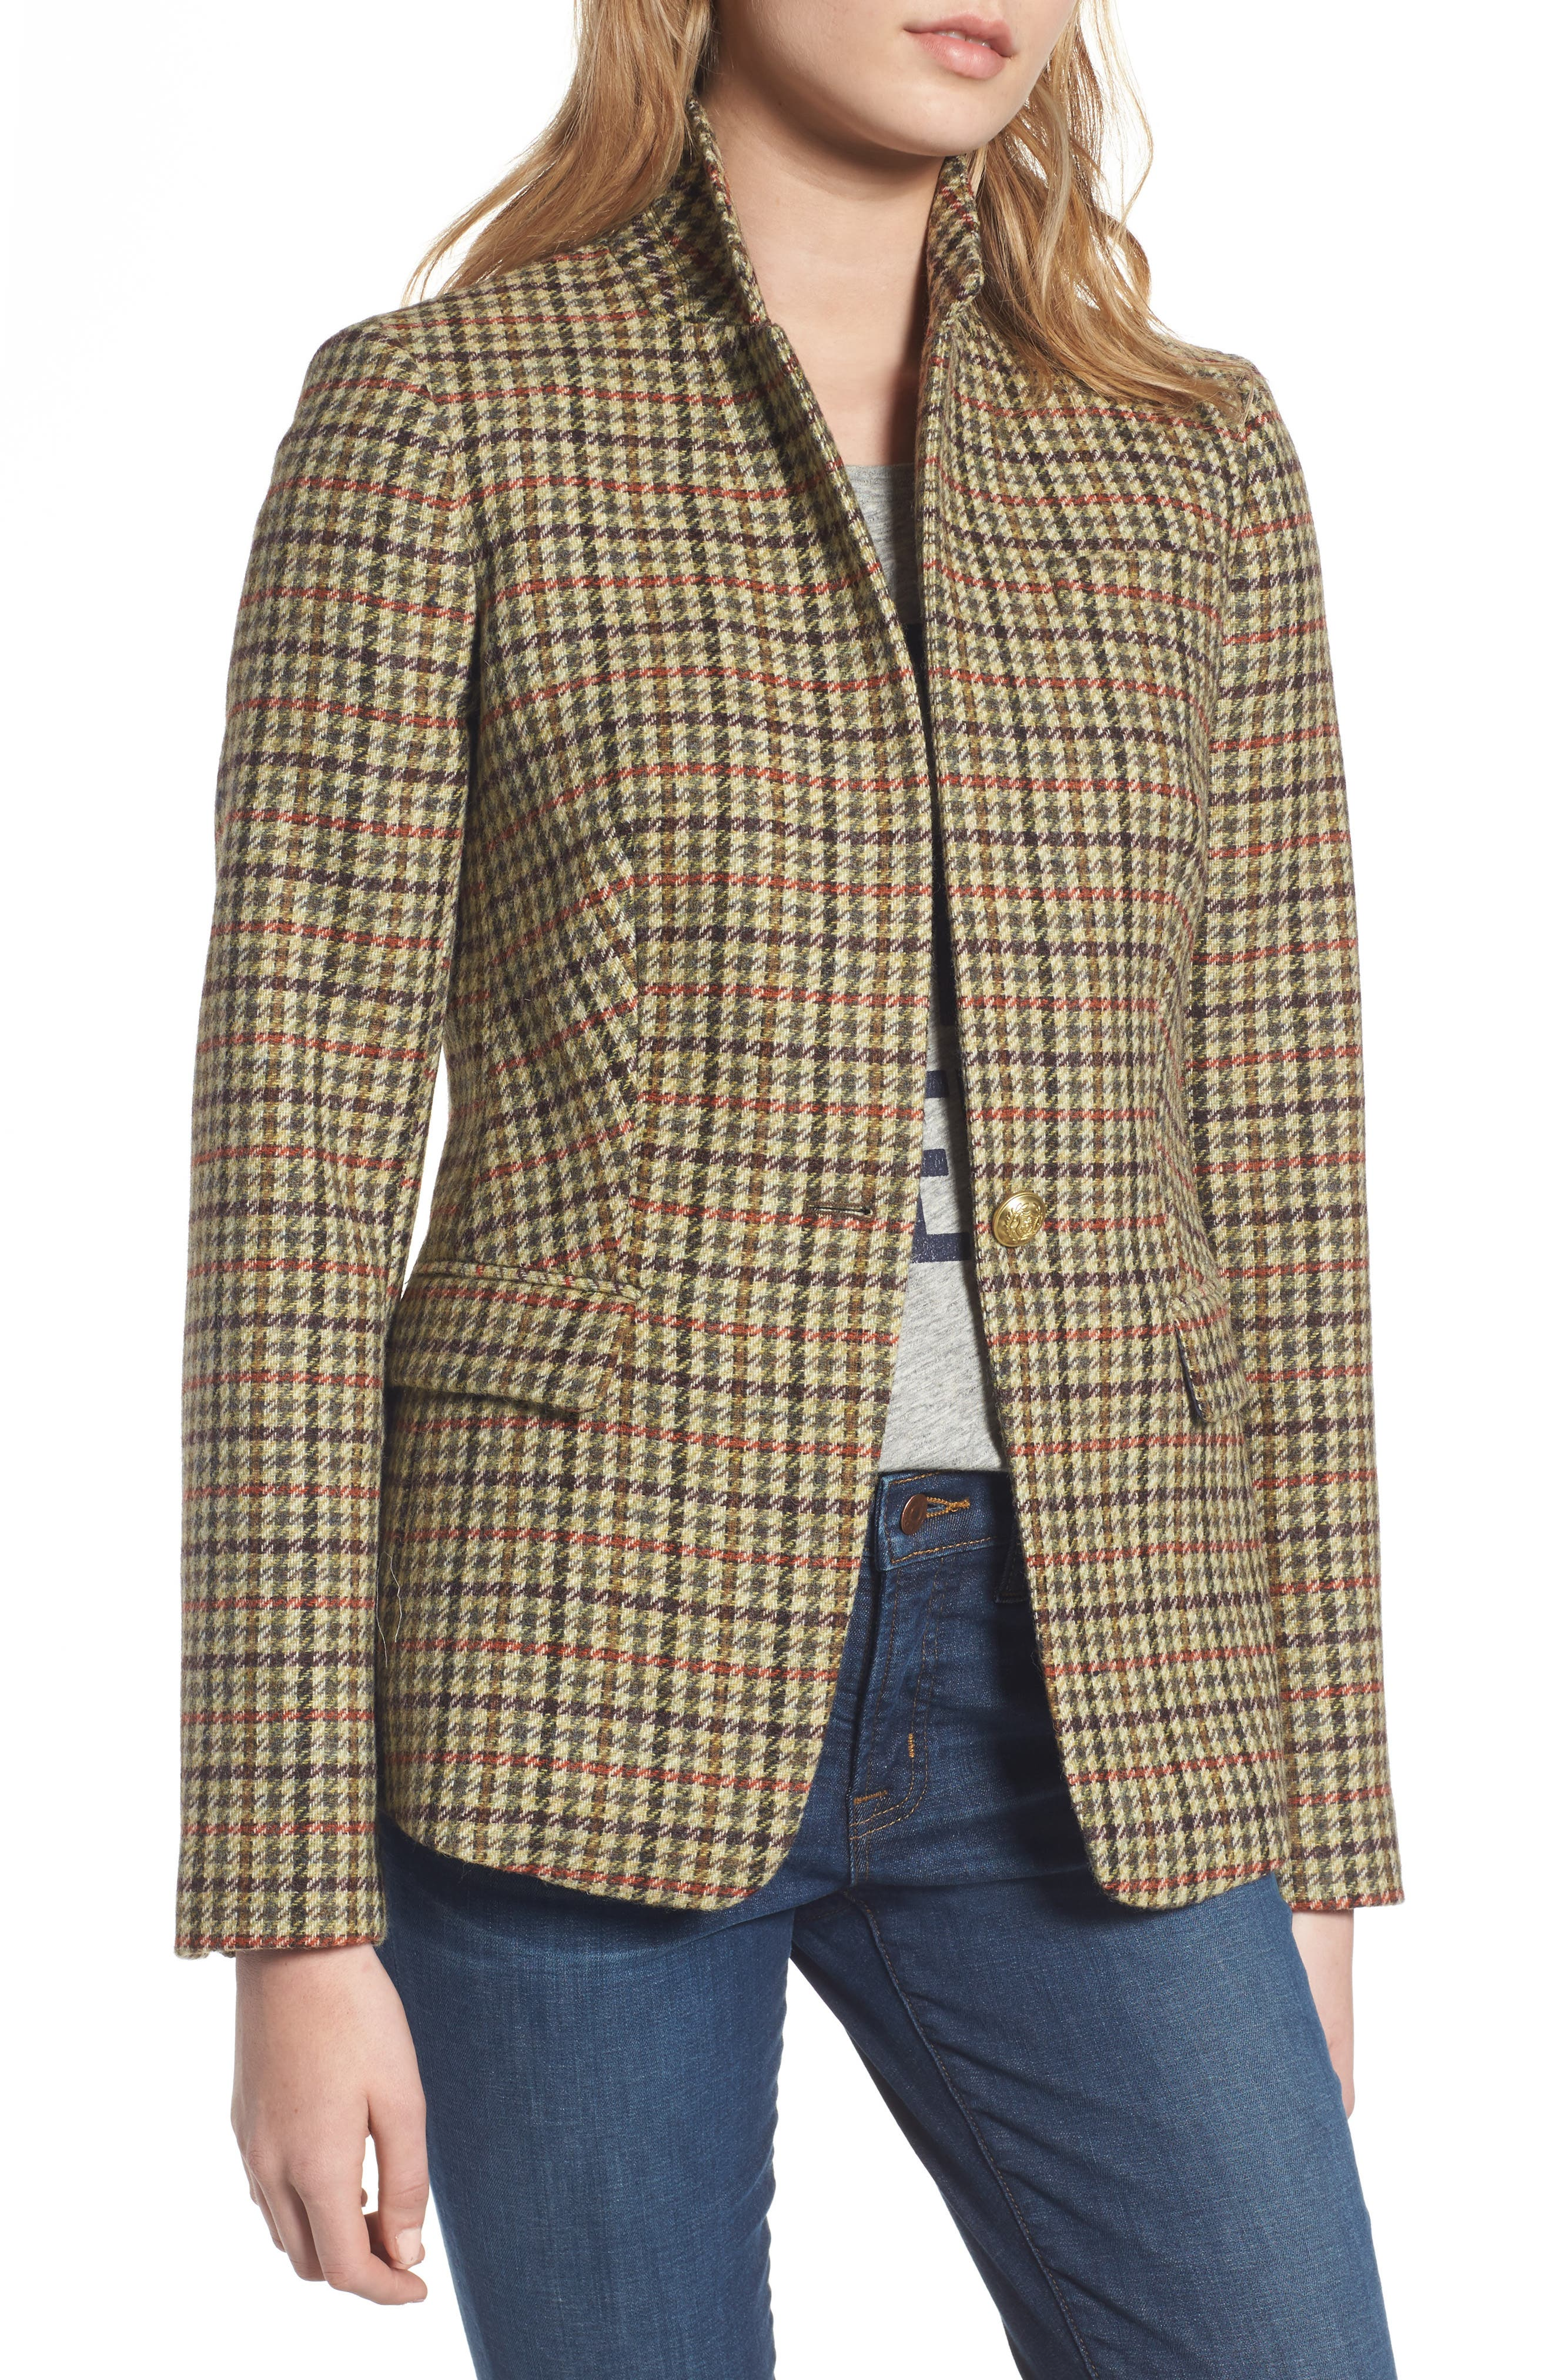 Main Image - J.Crew Regent Houndstooth Plaid Blazer (Regular & Petite)